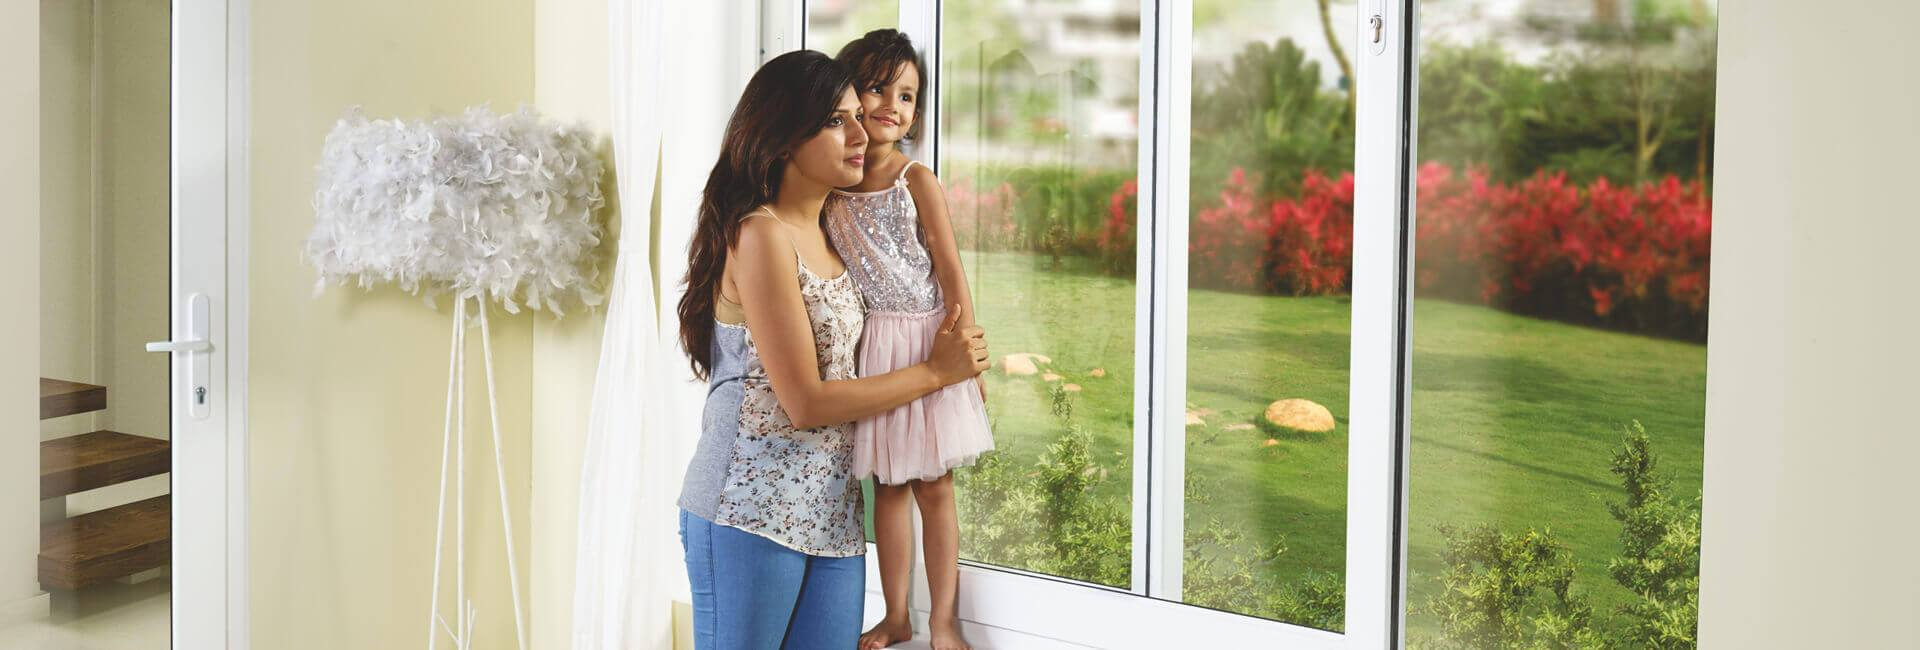 UPVC Windows For A Healthy Home